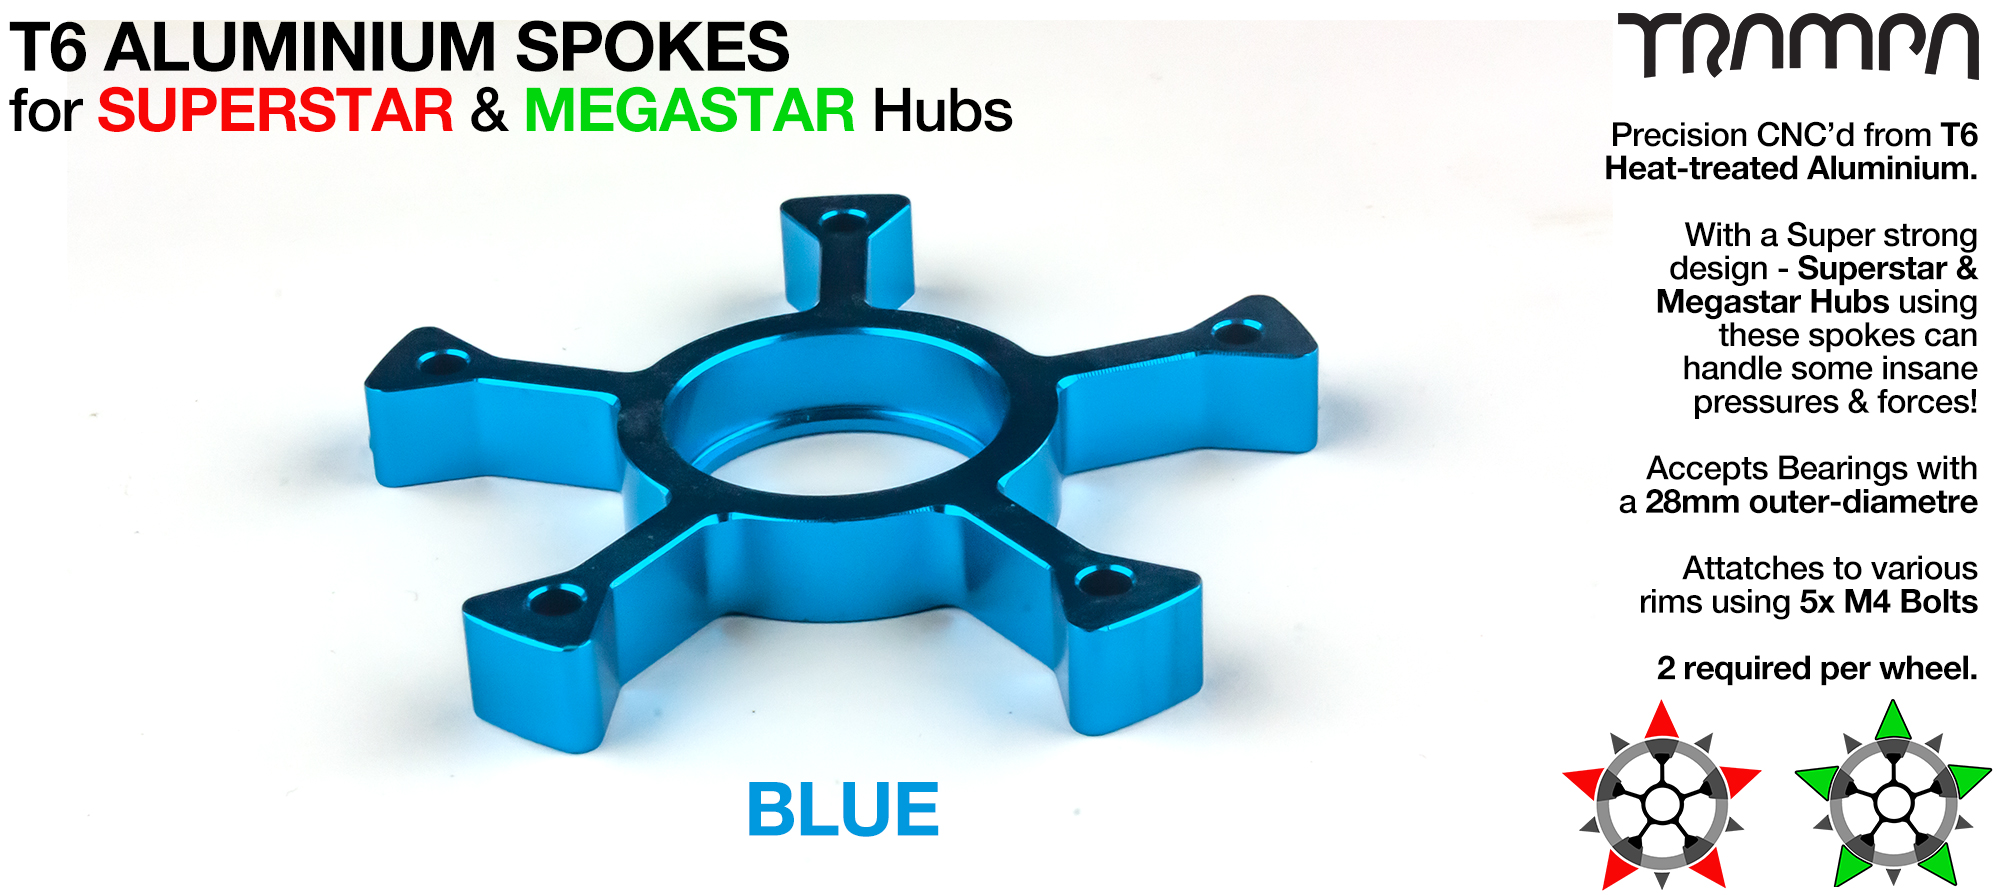 BLUE Anodised Superstar Spoke - Extruded T6 Aluminum Heat treated & CNC Precision milled